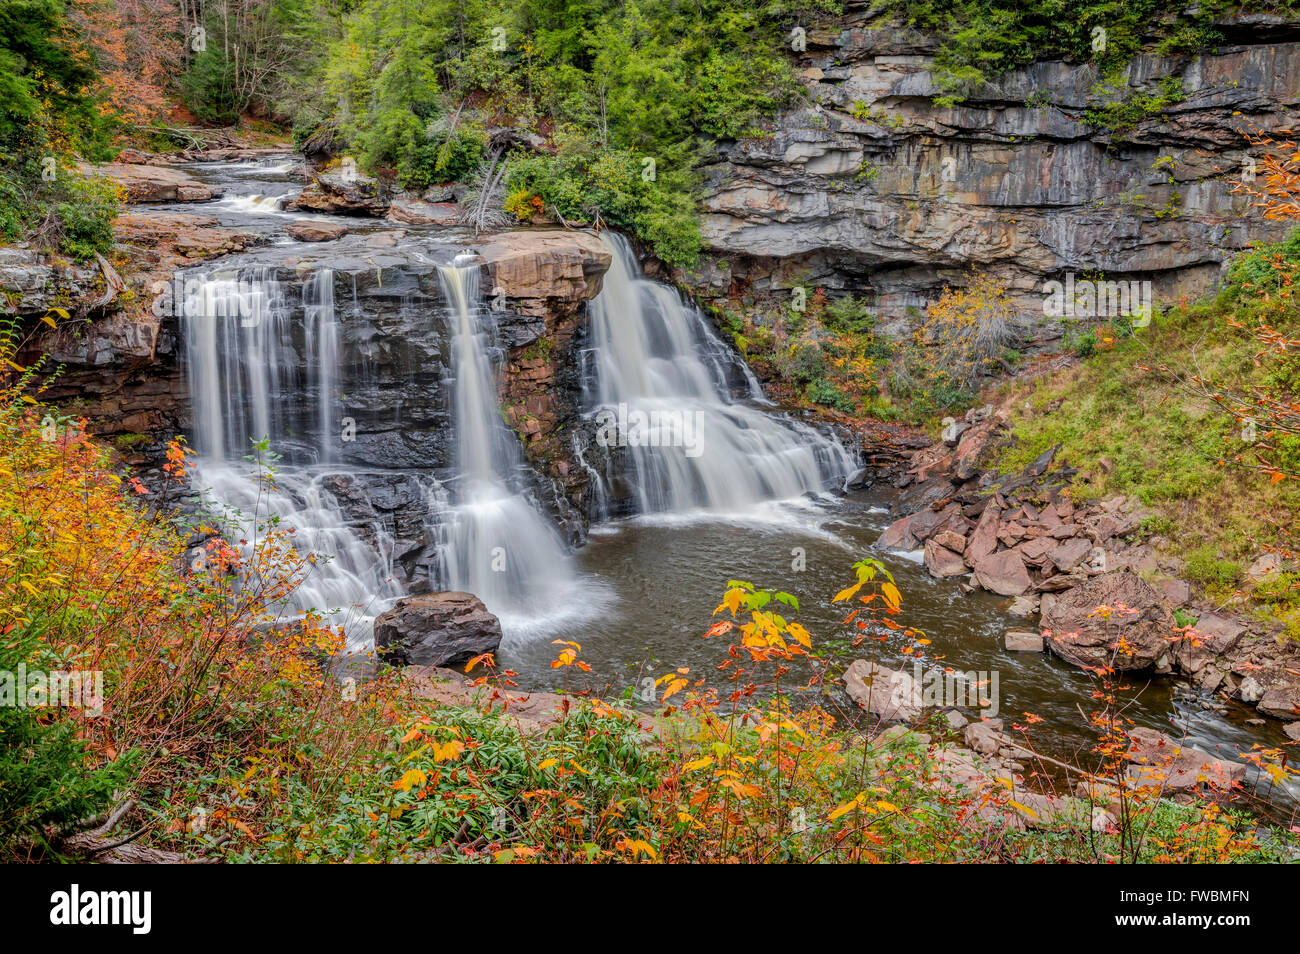 The iconic Blackwater falls as shot from the main overlook in autumn West Virginia, USA. - Stock Image